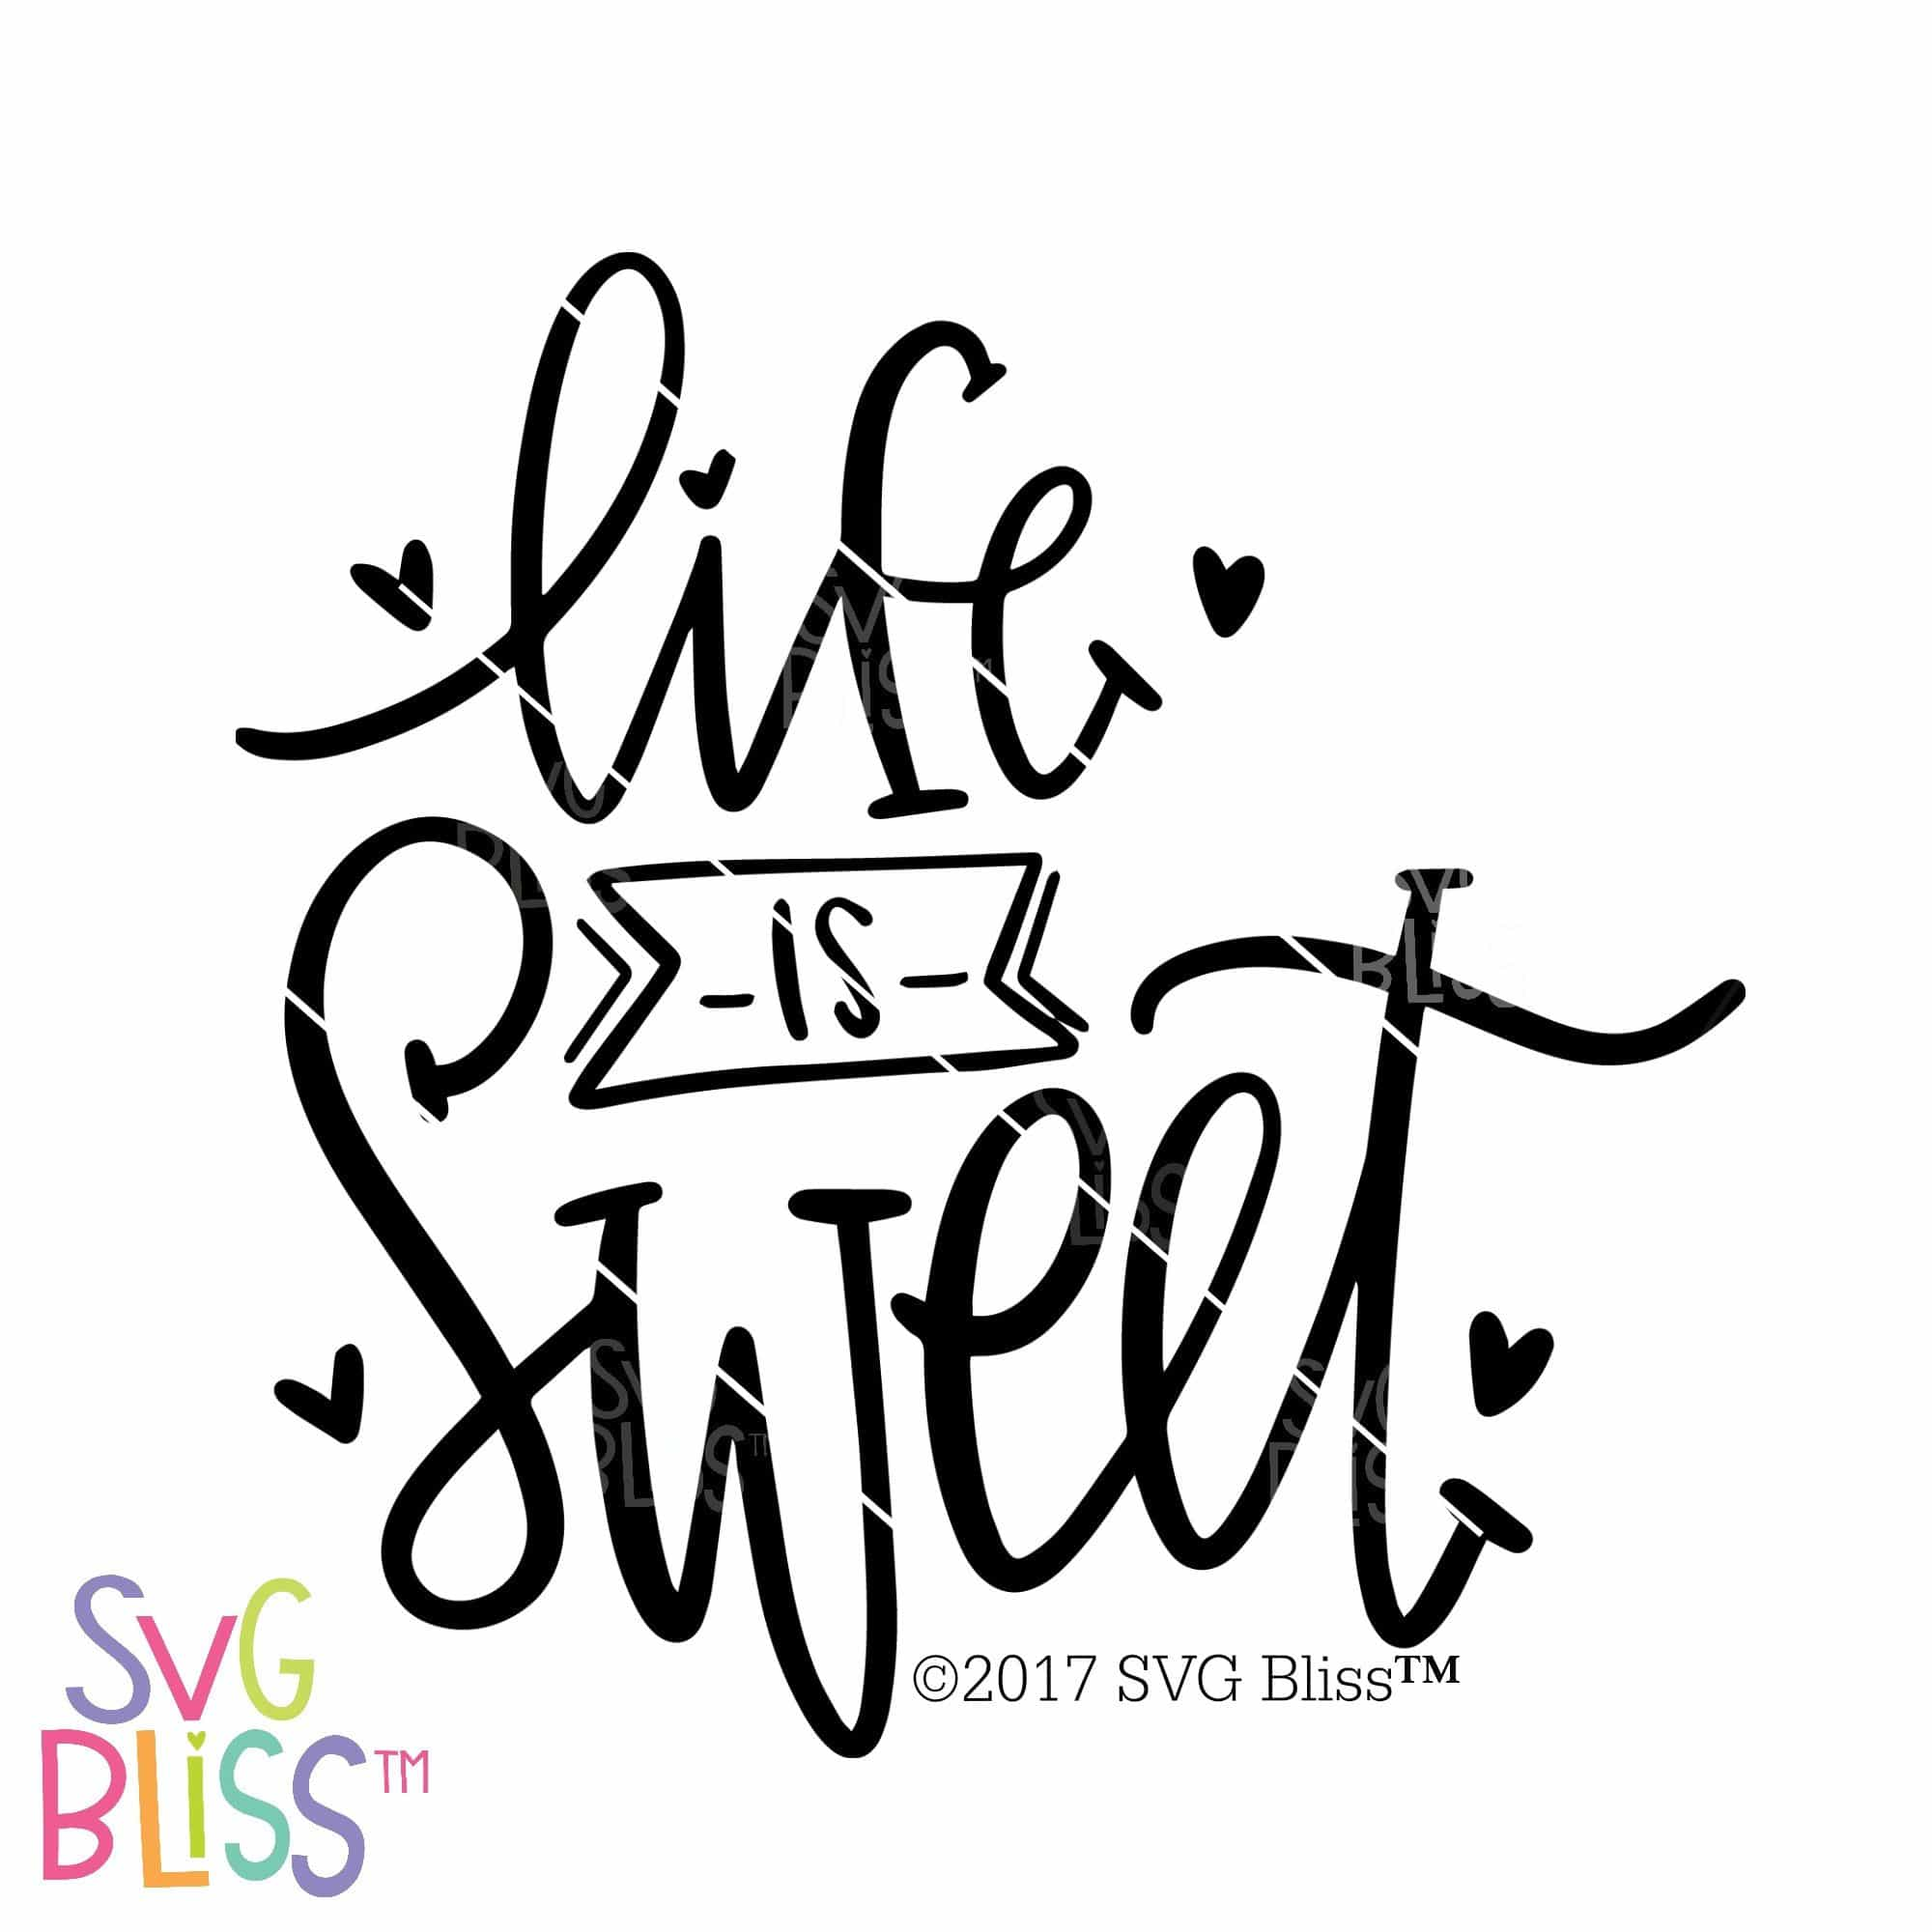 Life Is Sweet Svg Eps Dxf Png Svg Bliss